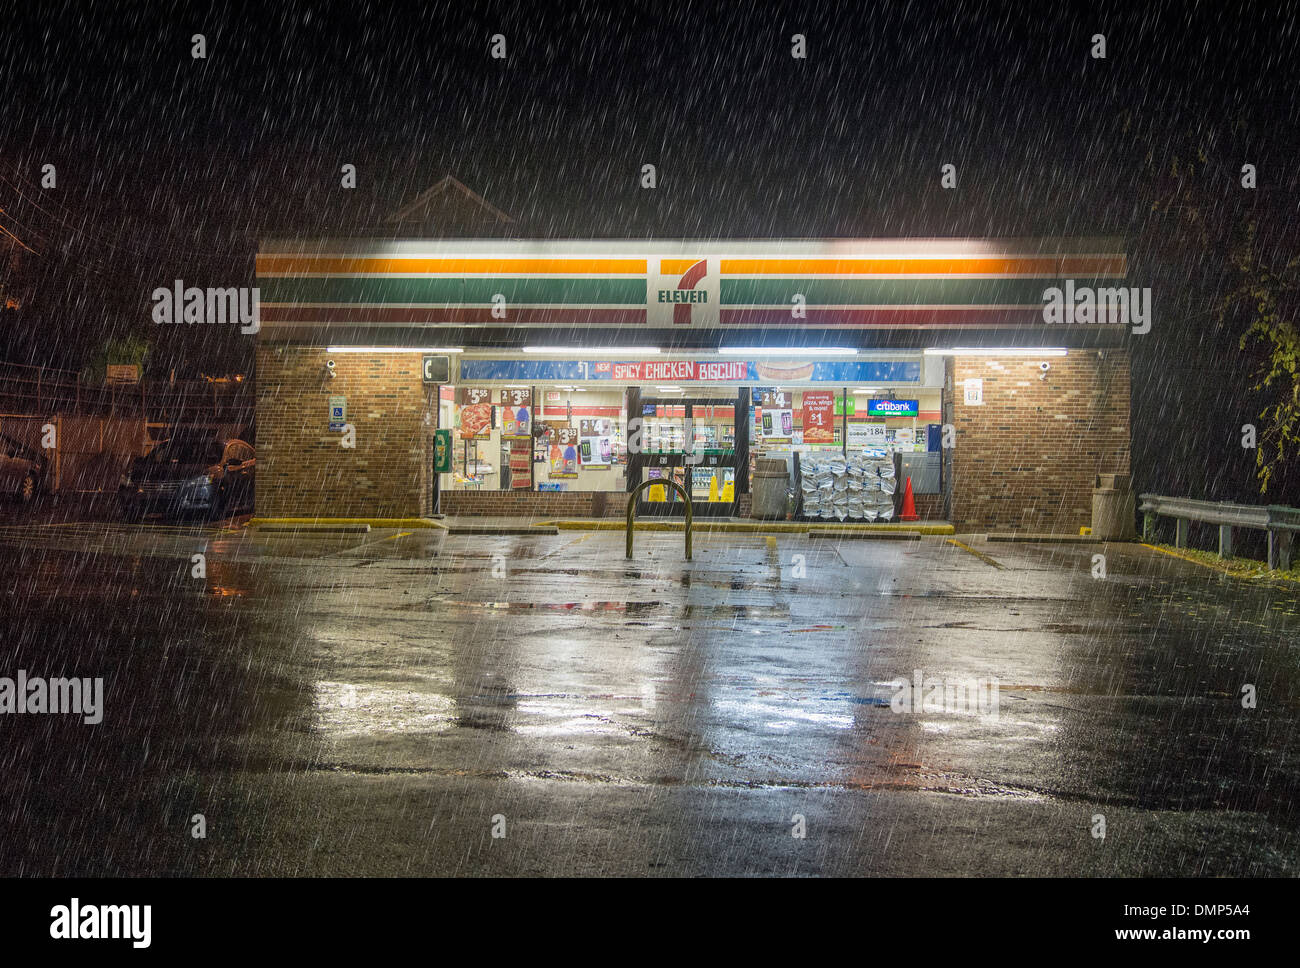 7-11 Convenience Store In The Rain at Night - Stock Image